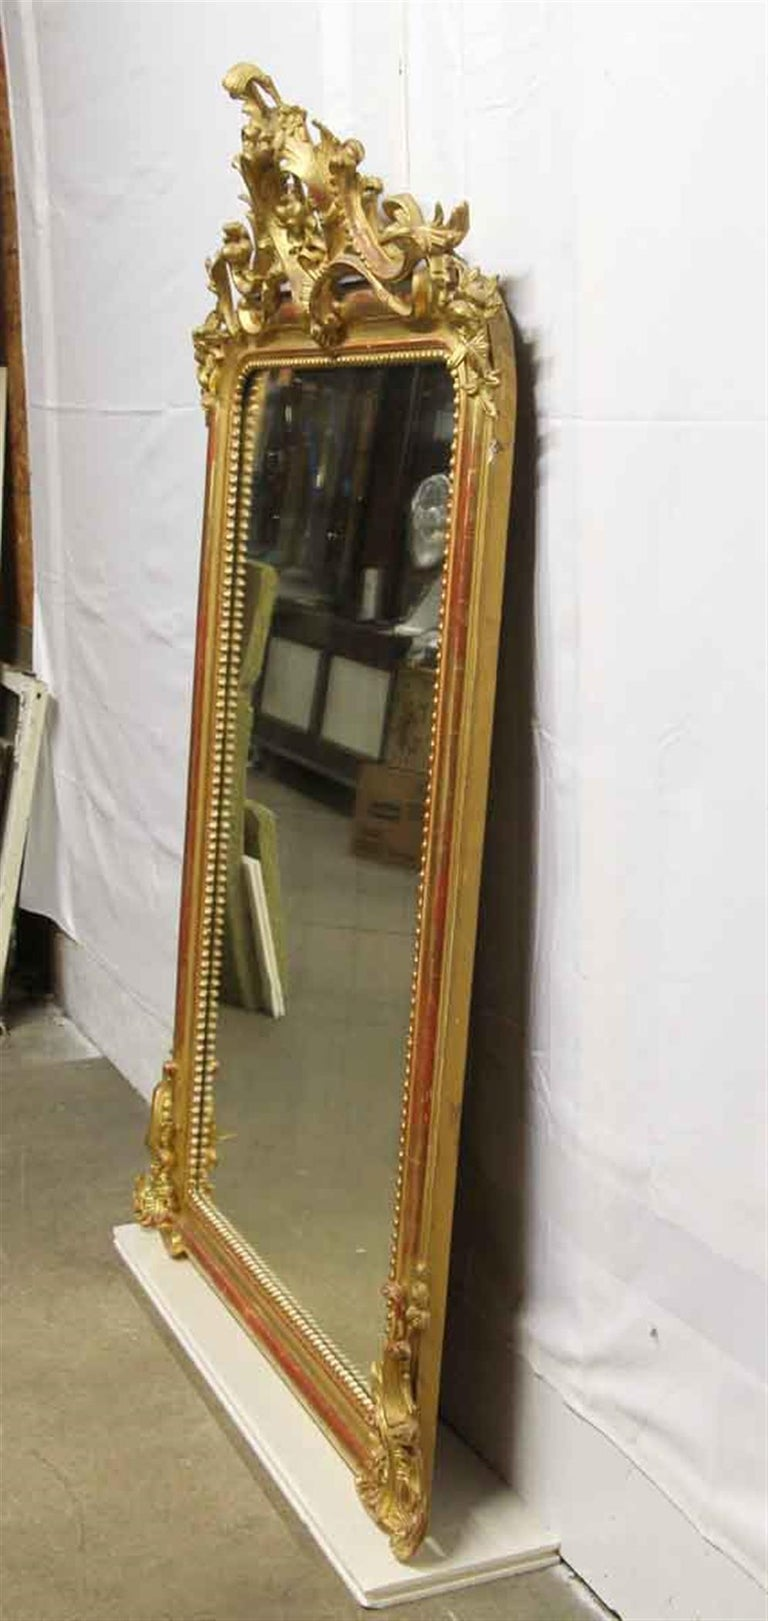 1920s French Hand Carved and Gesso Gilded Over Mantel Mirror with Floral Details For Sale 4